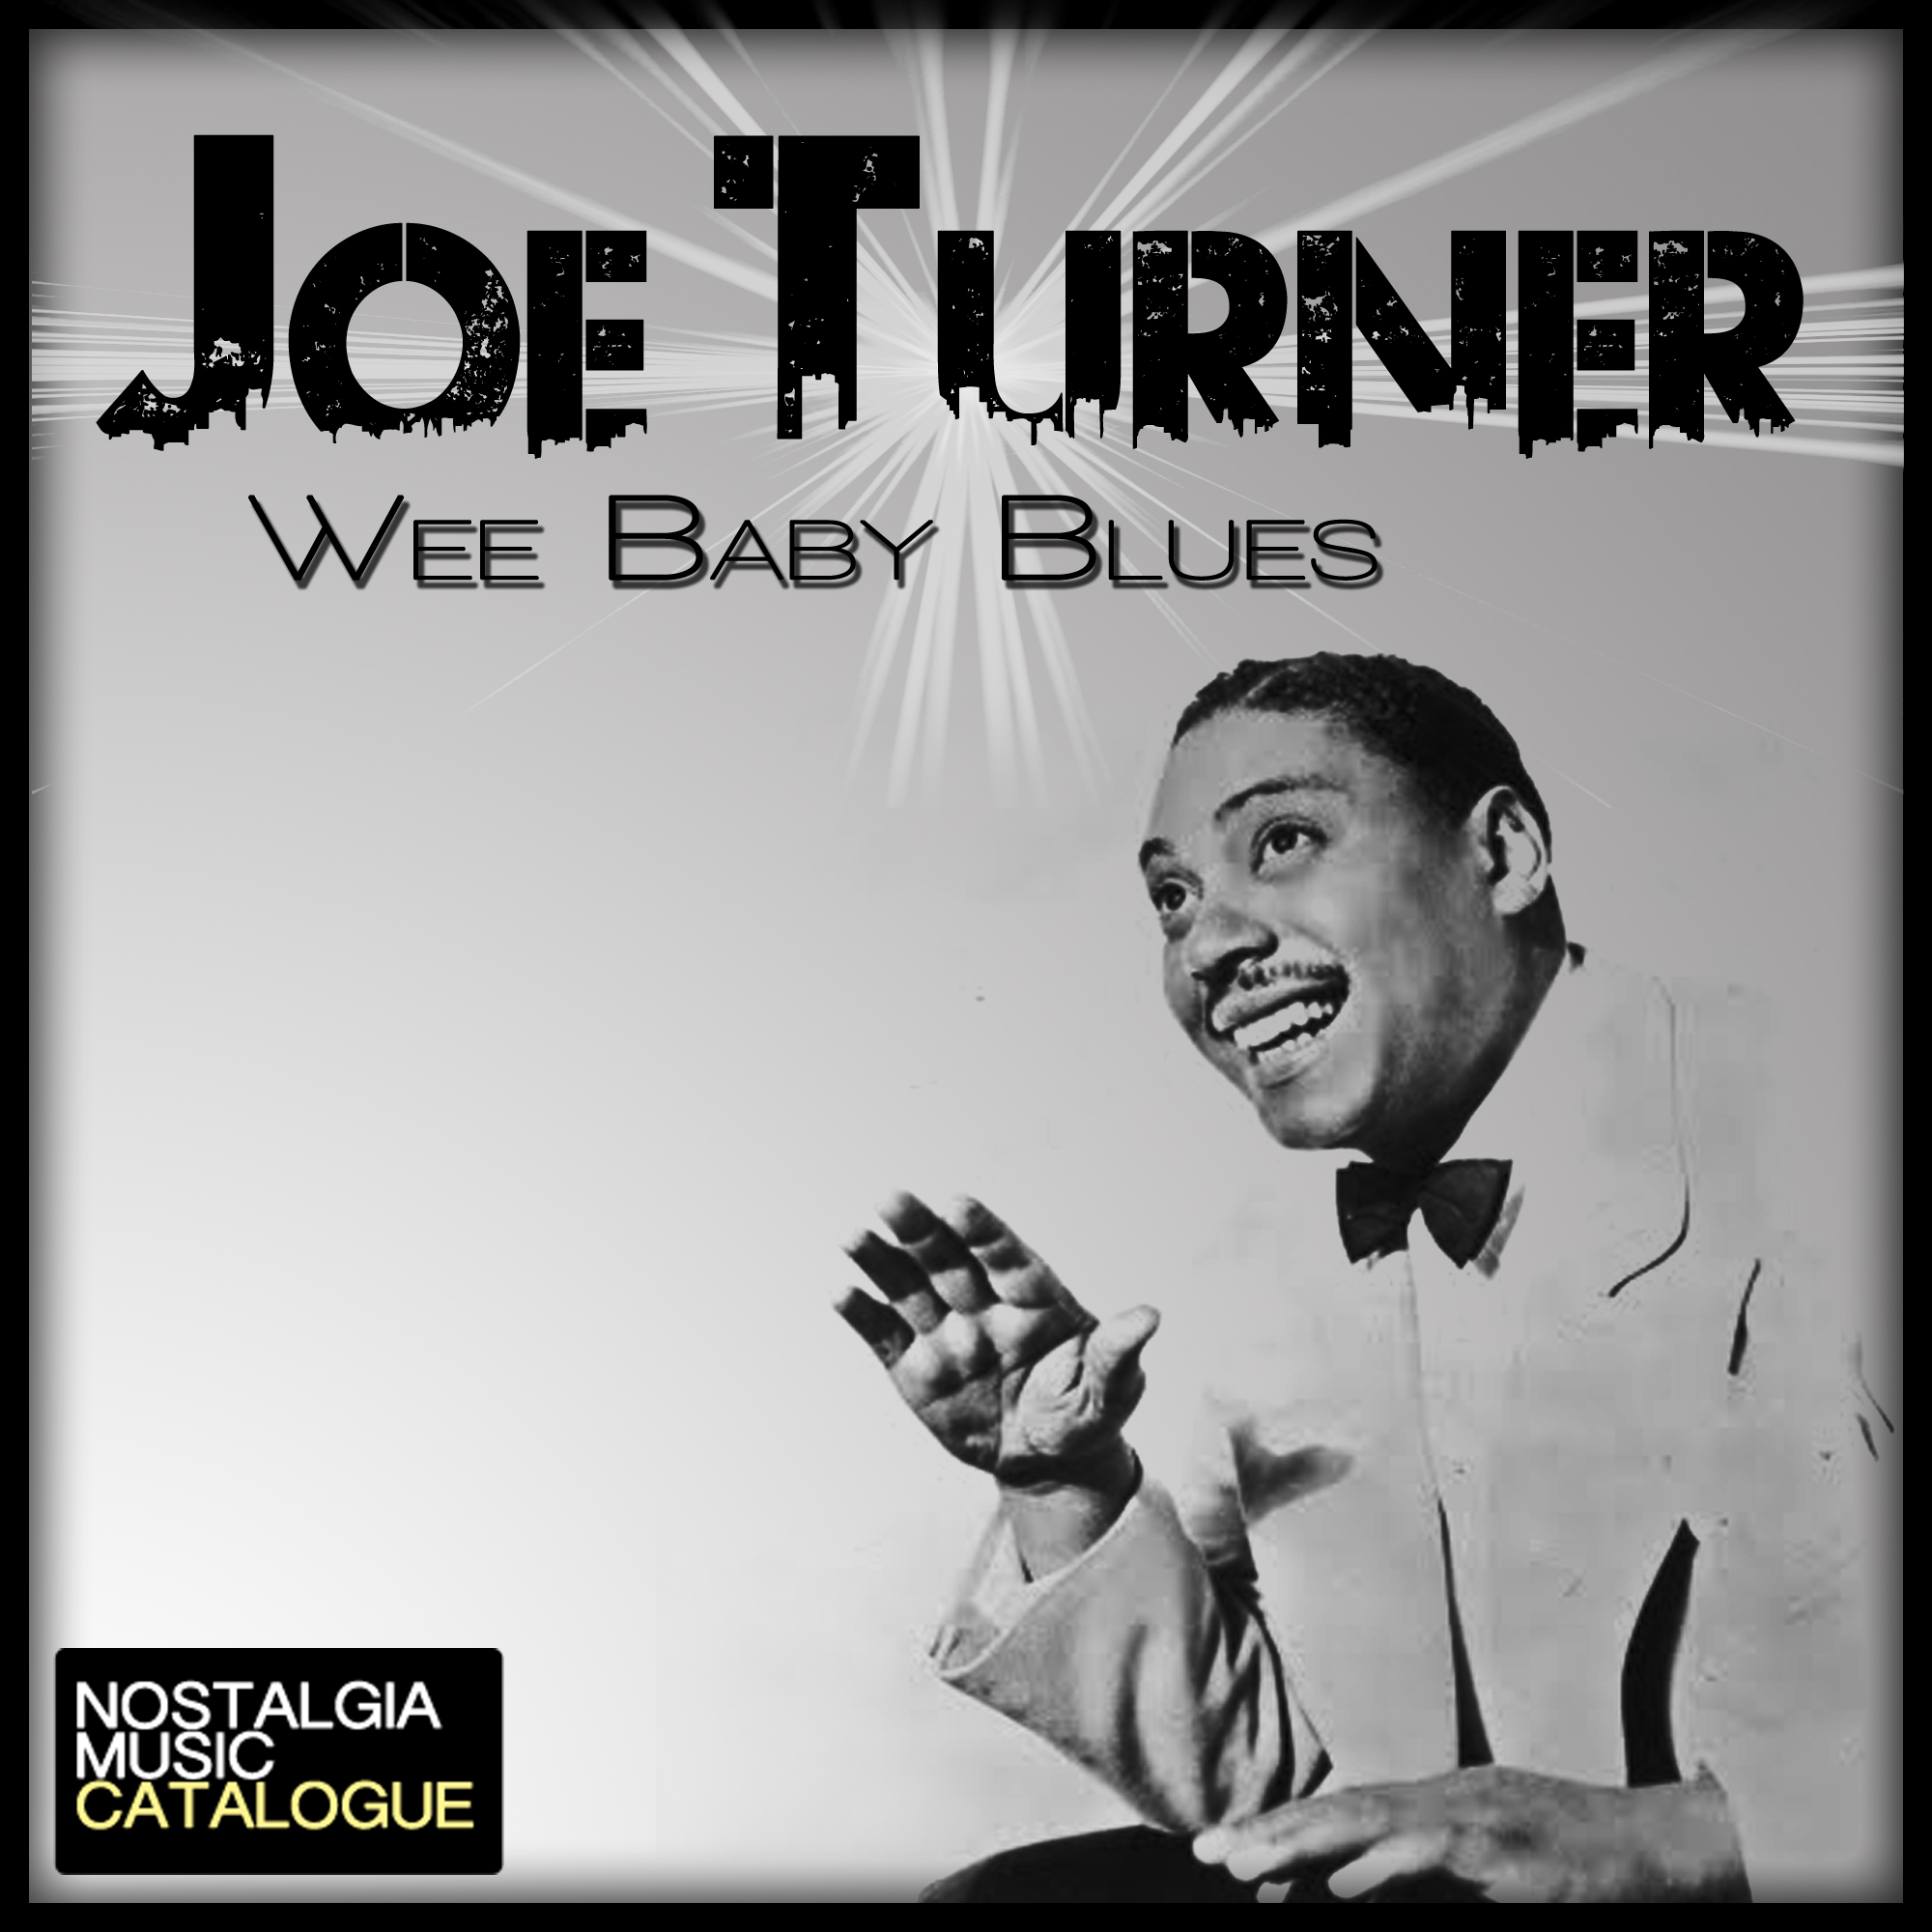 Wee Baby Blues – Joe Turner